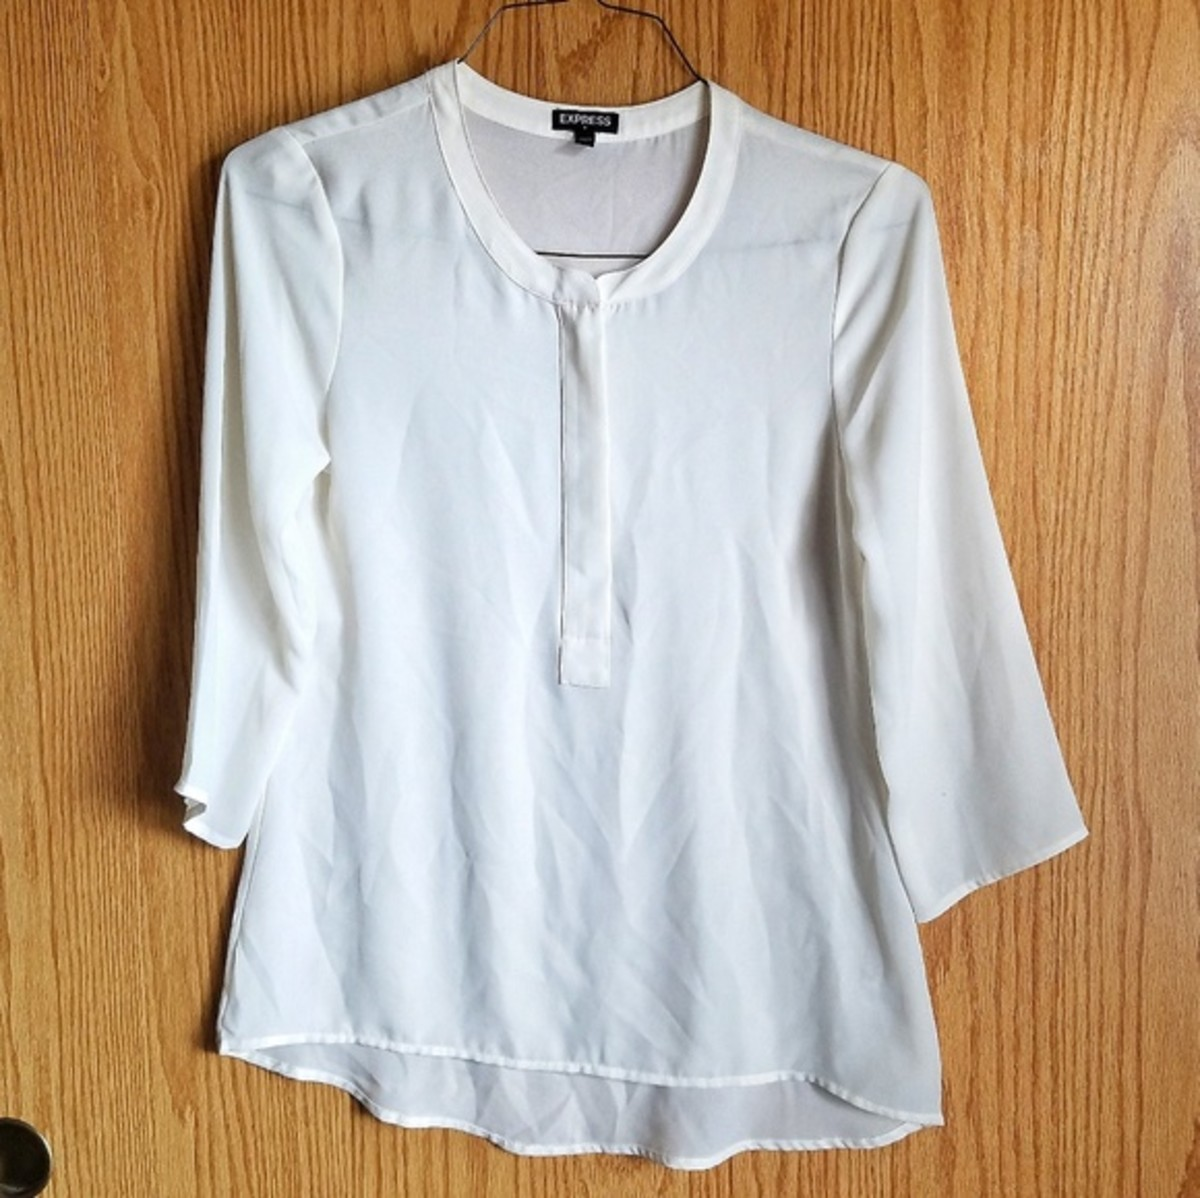 This is an Express brand blouse I bought used on Poshmark.